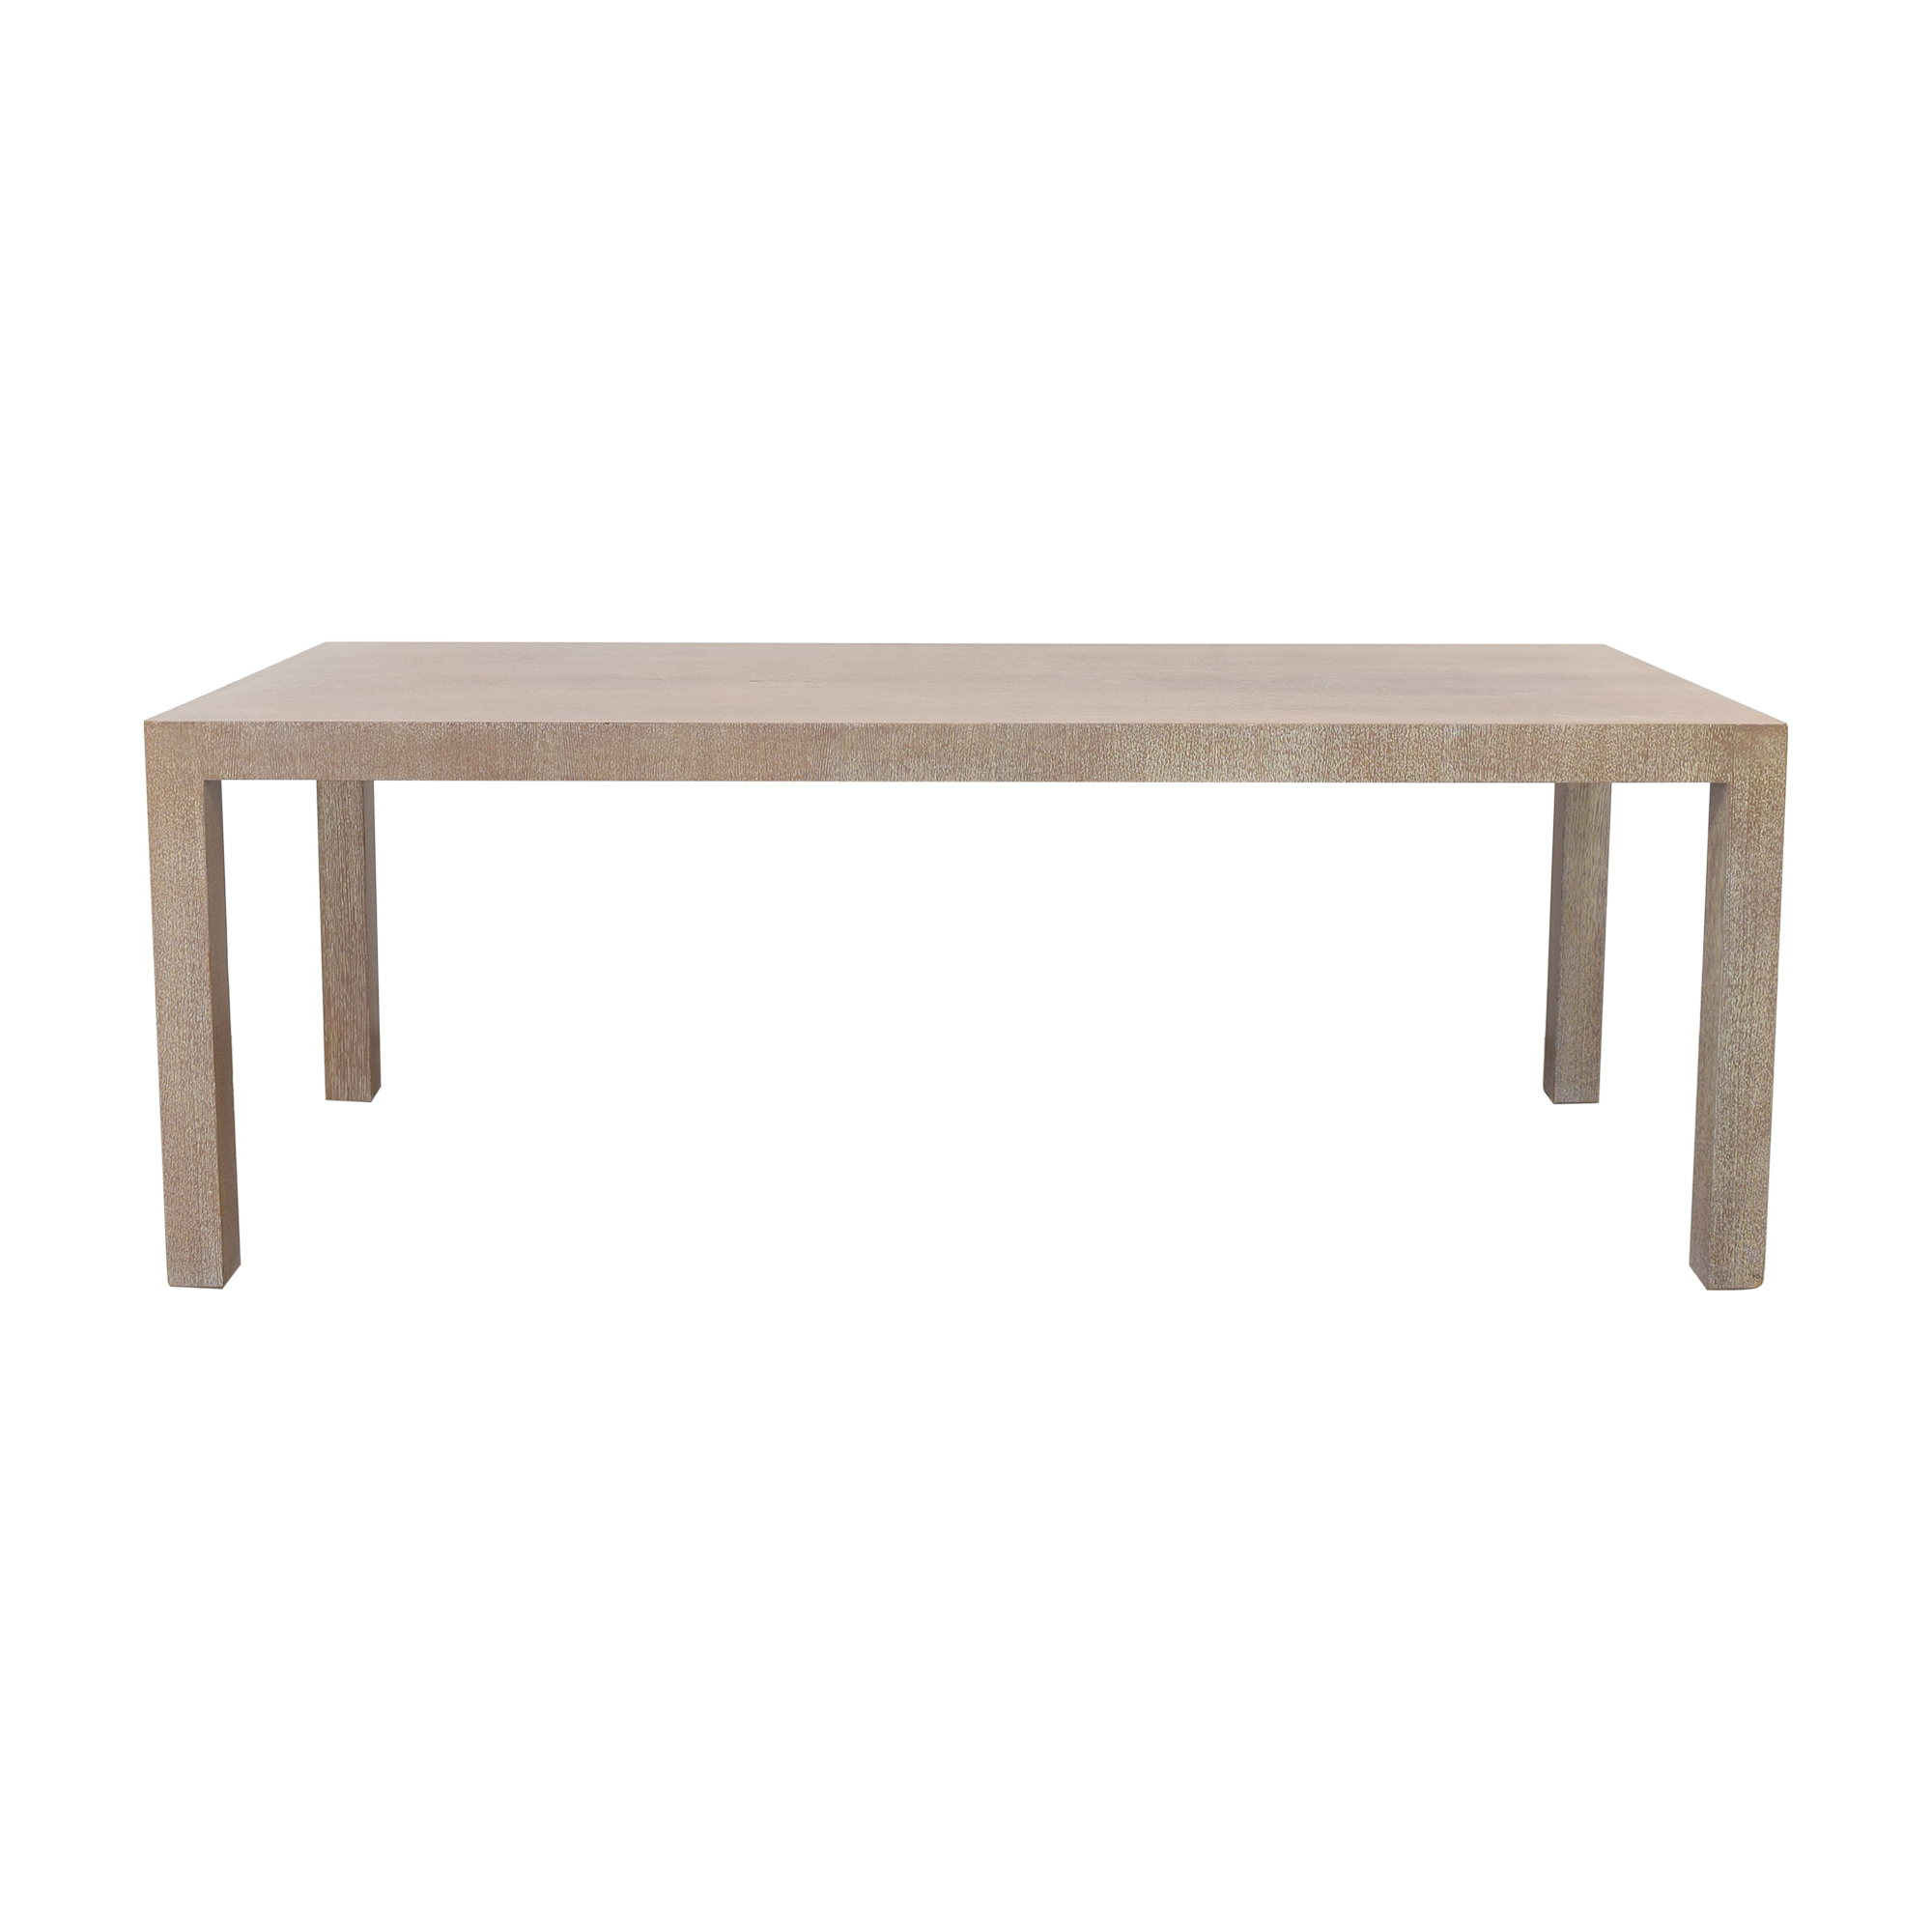 Armani Casa Dining Table / Tables